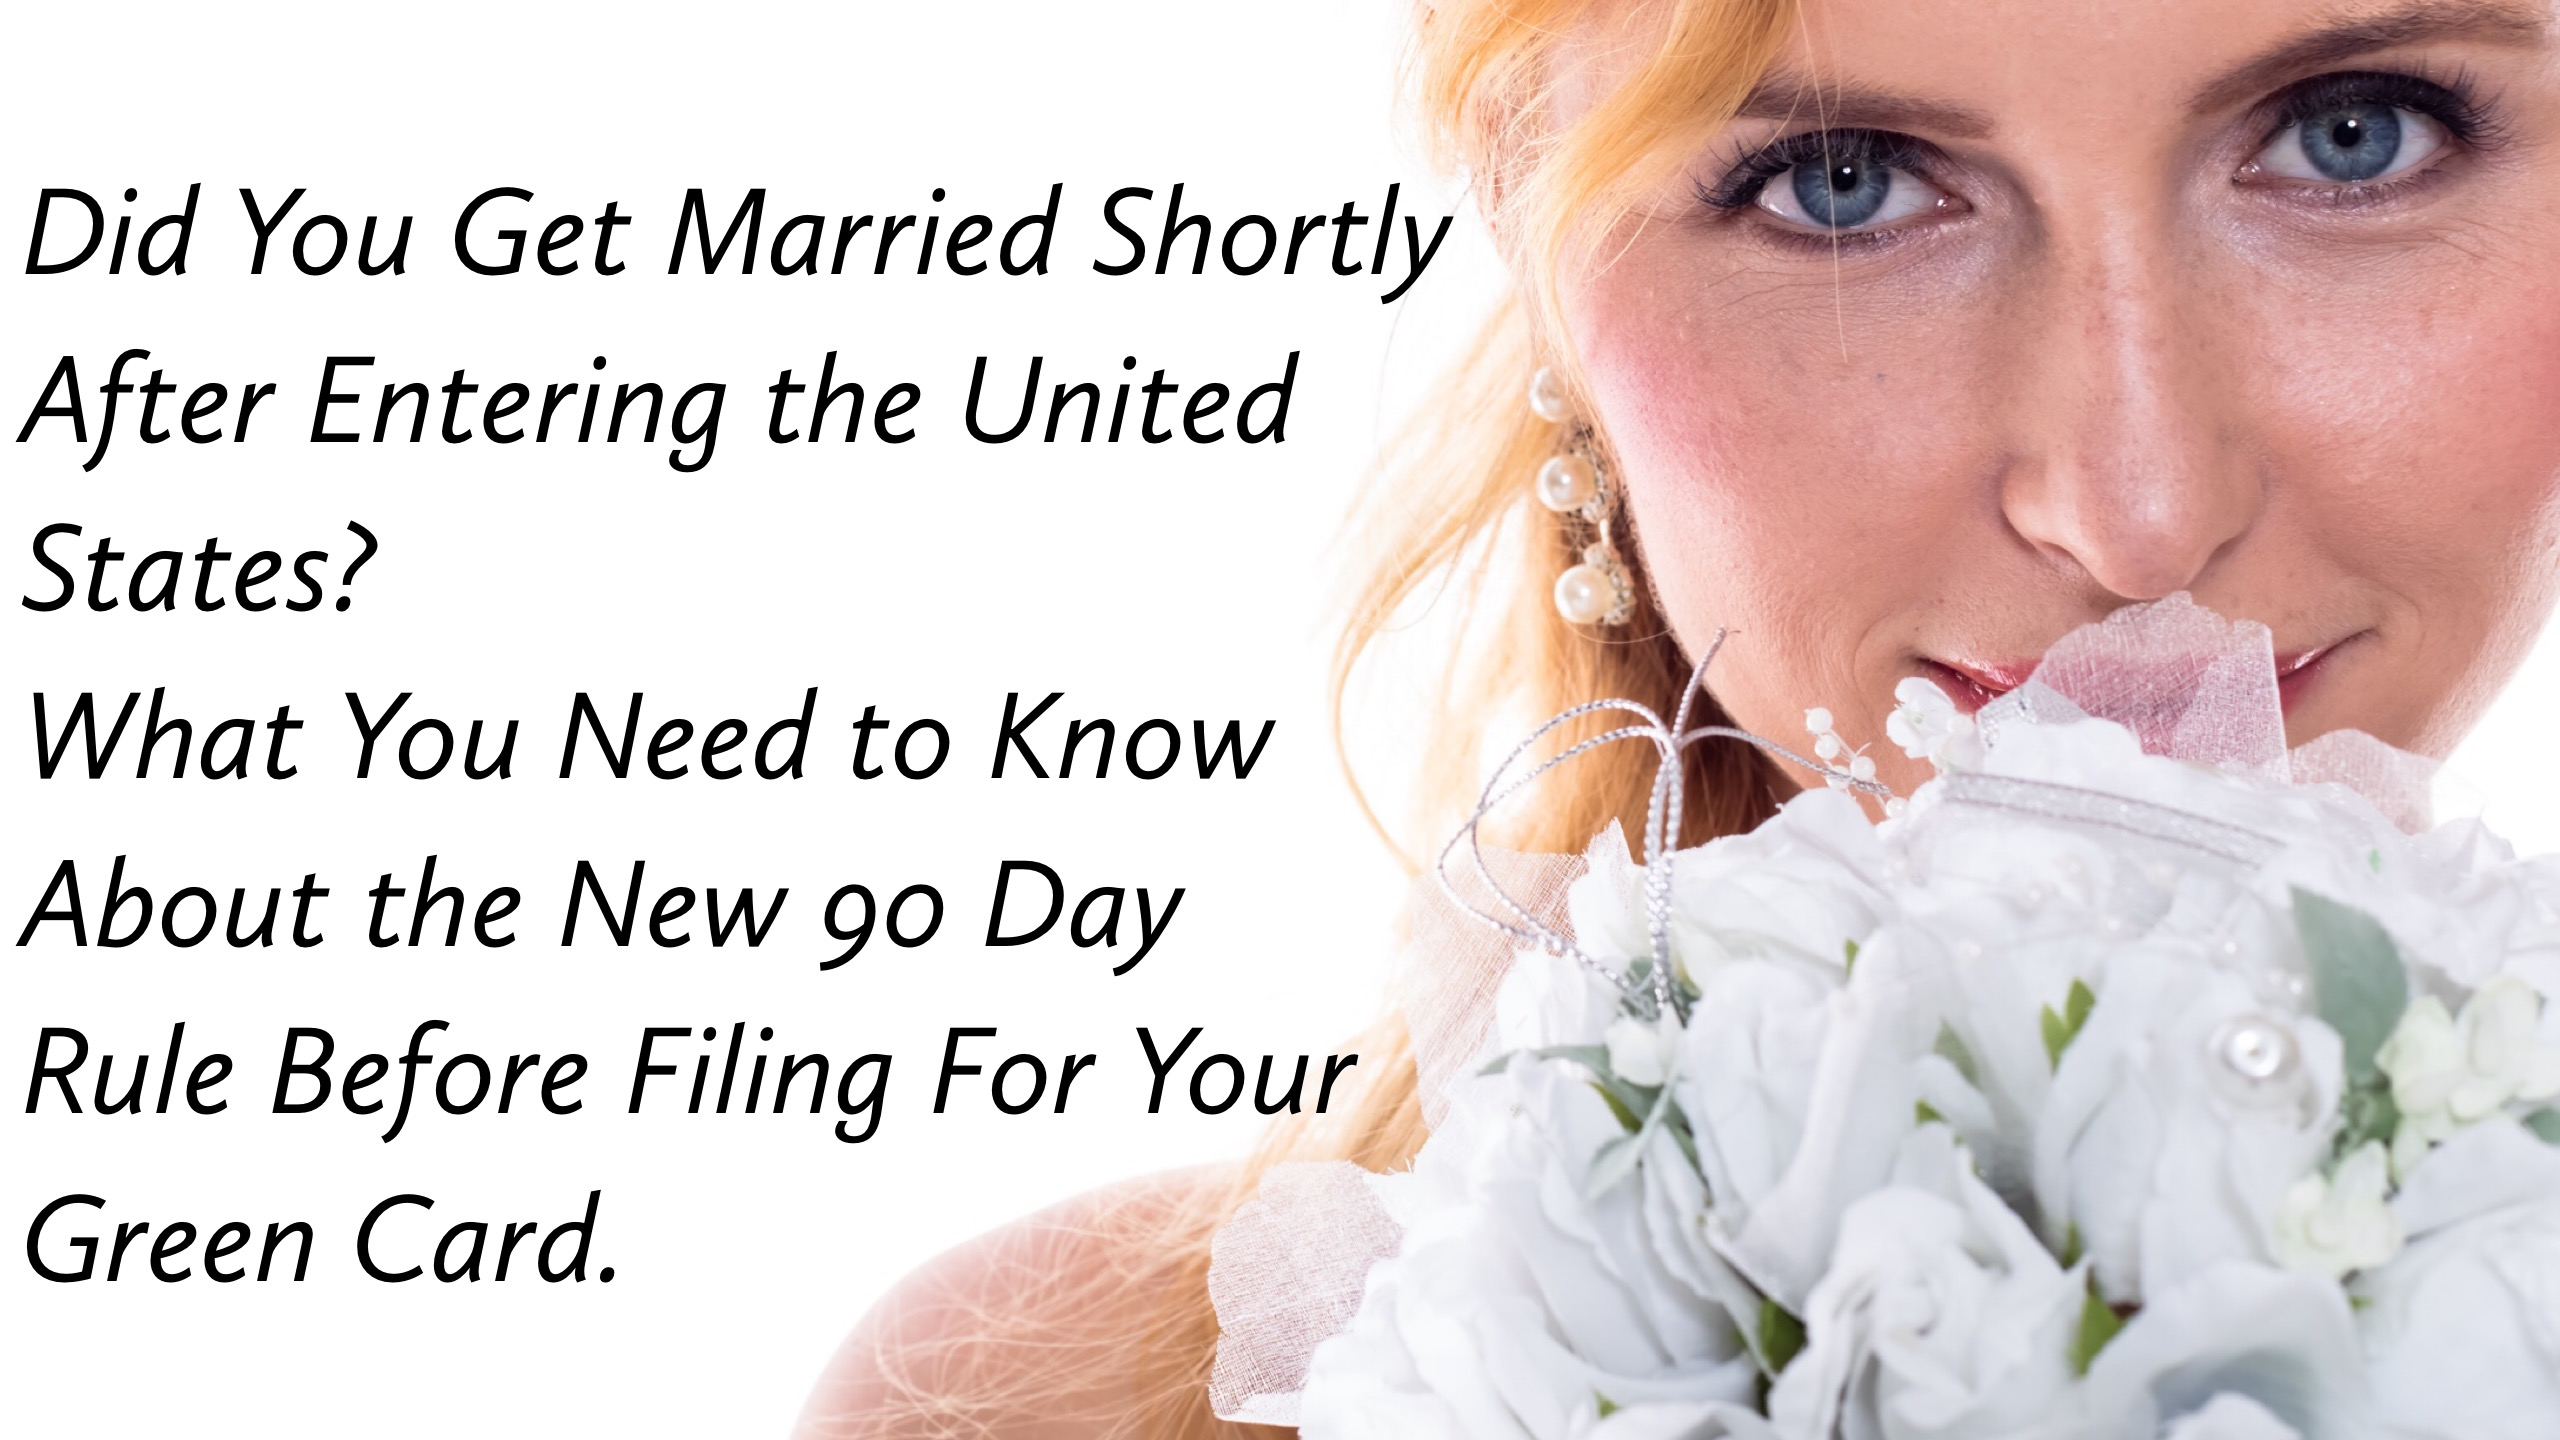 Did You Get Married Shortly After Entering the United States